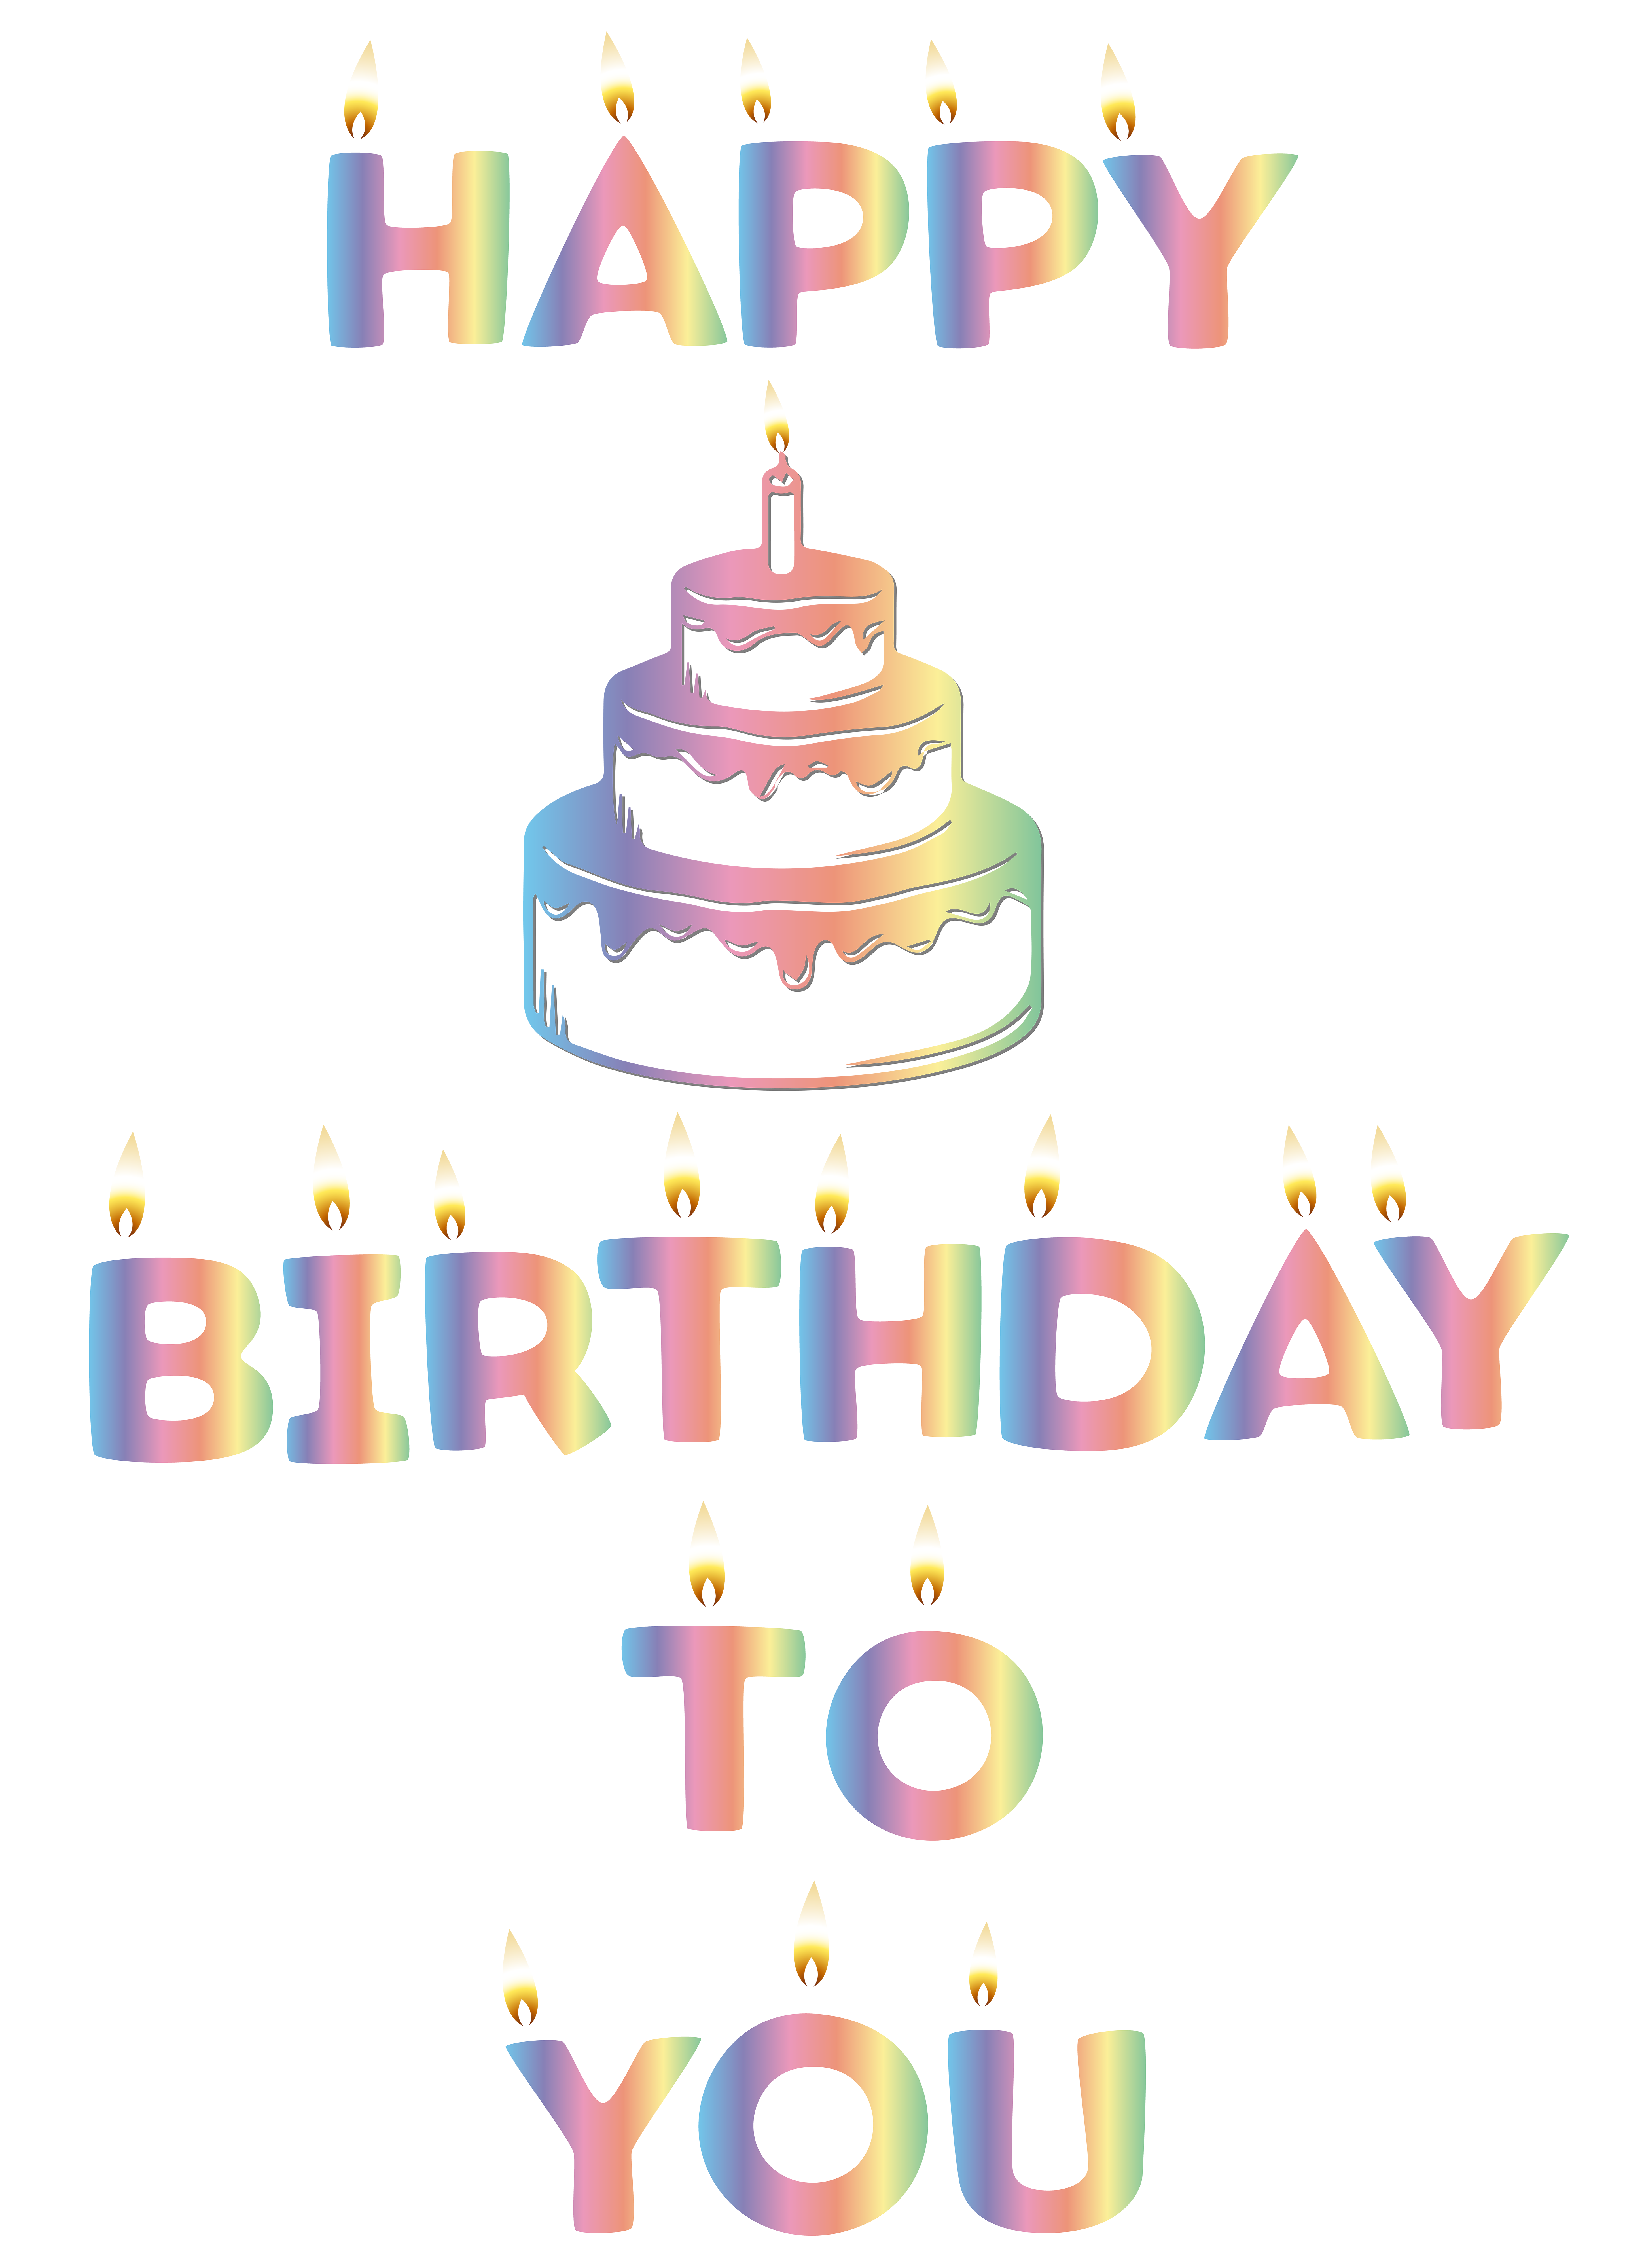 Png clip art image. Cone clipart happy birthday